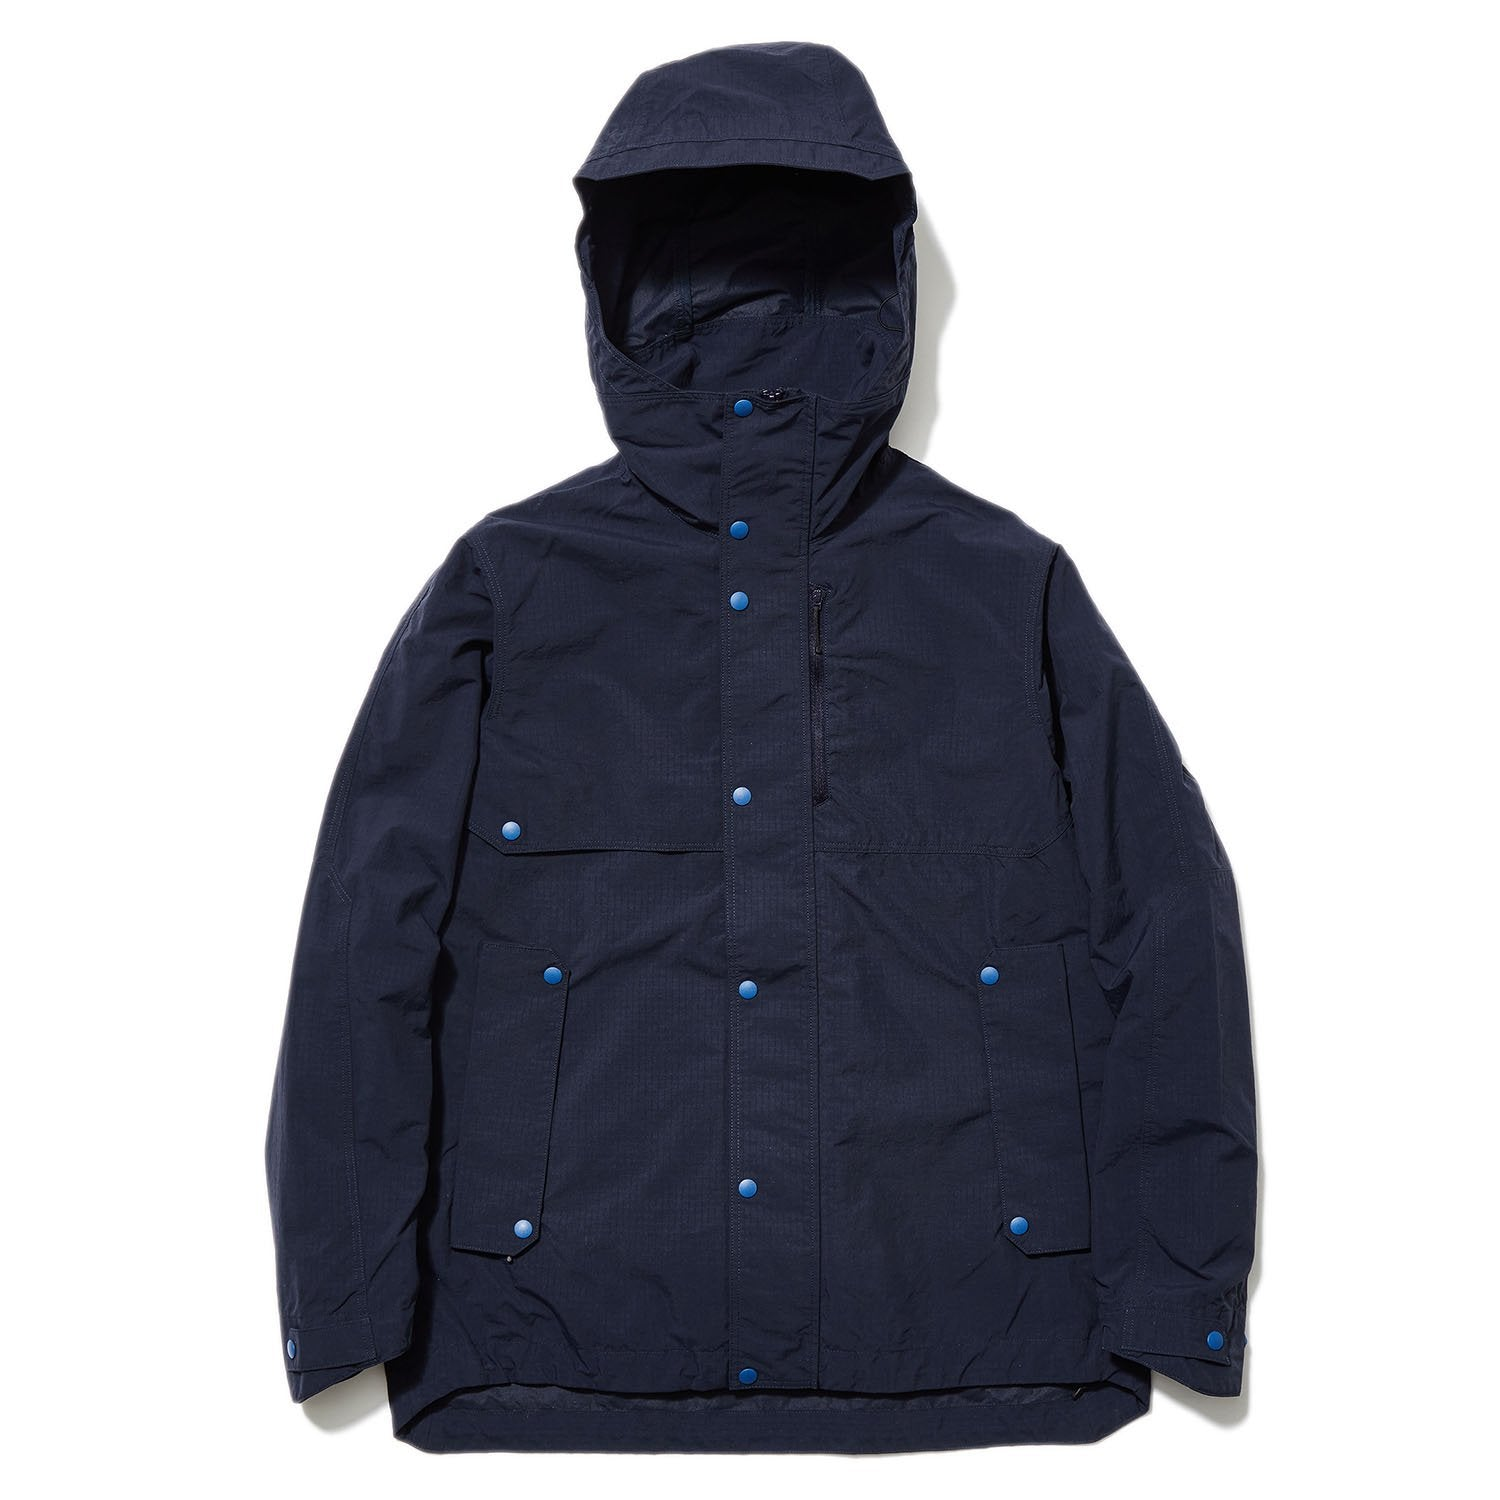 HOODED BLOUSON BLACK